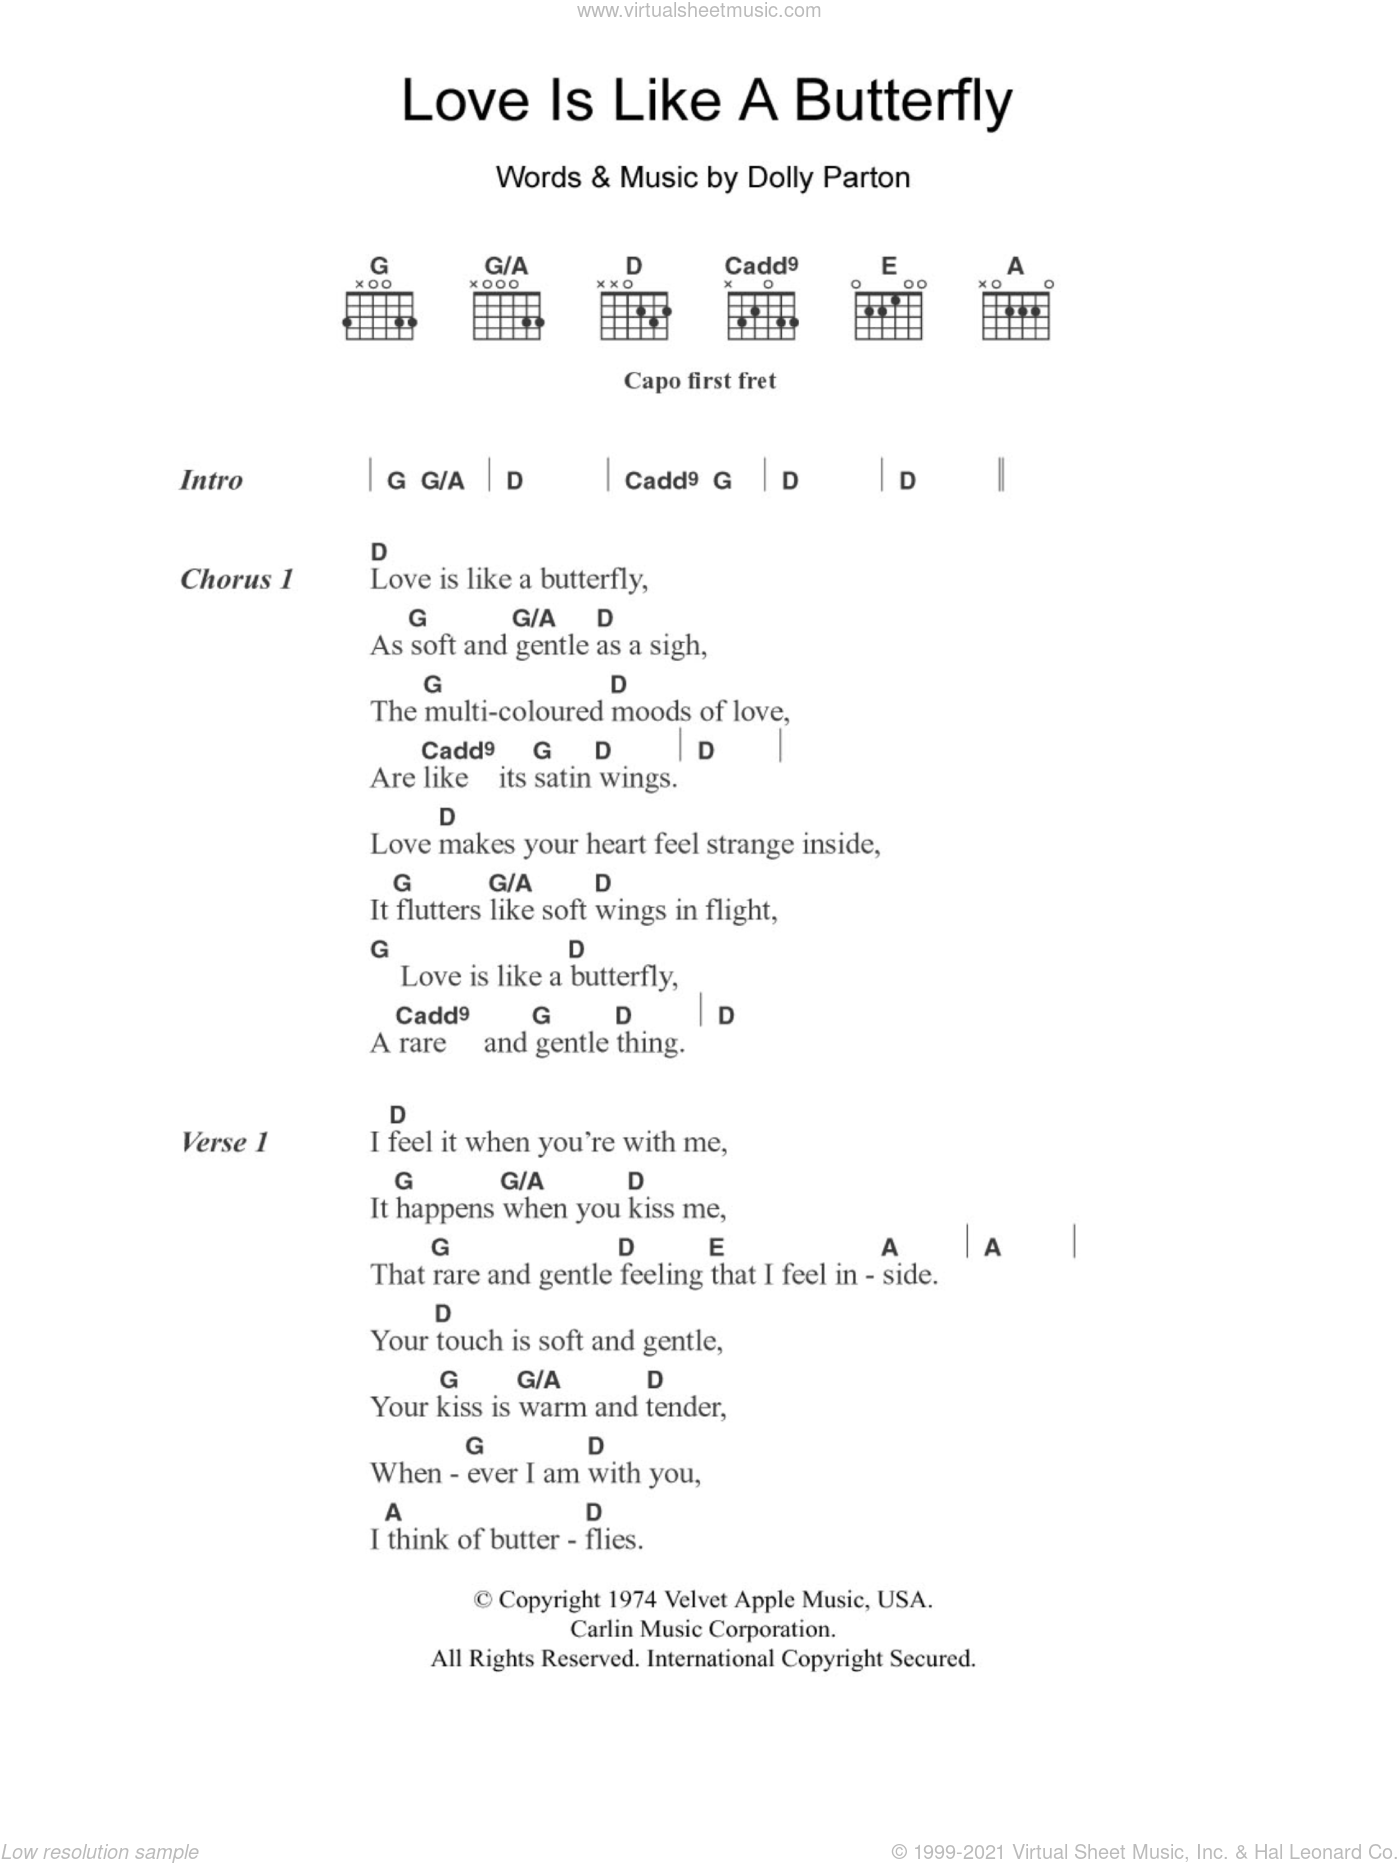 Love Is Like A Butterfly sheet music for guitar (chords, lyrics, melody) by Dolly Parton